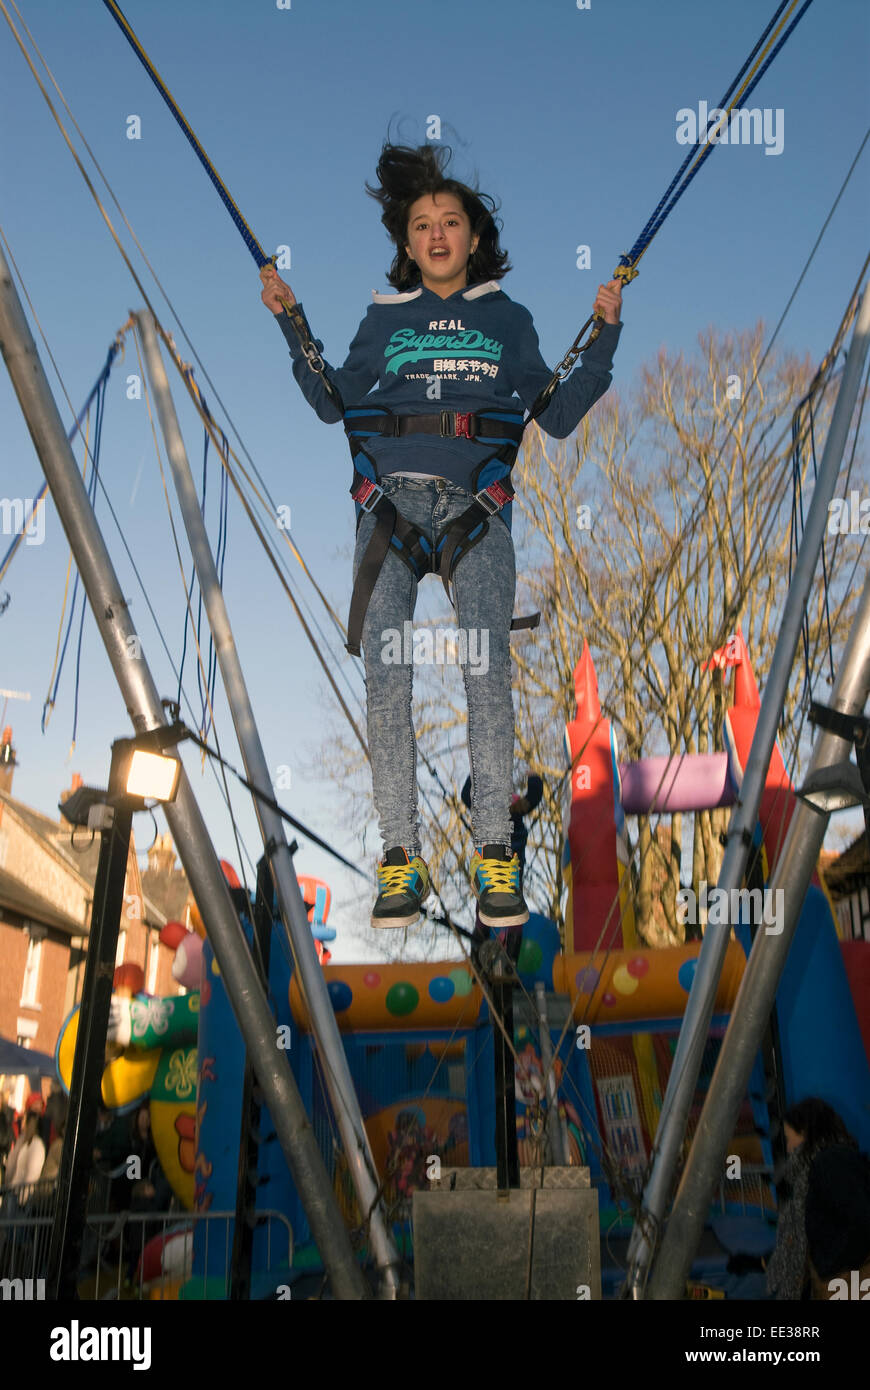 12 year old girl having fun on the bunjee trampoline at a Christmas market, High Street, Haslemere, Surrey, UK. - Stock Image